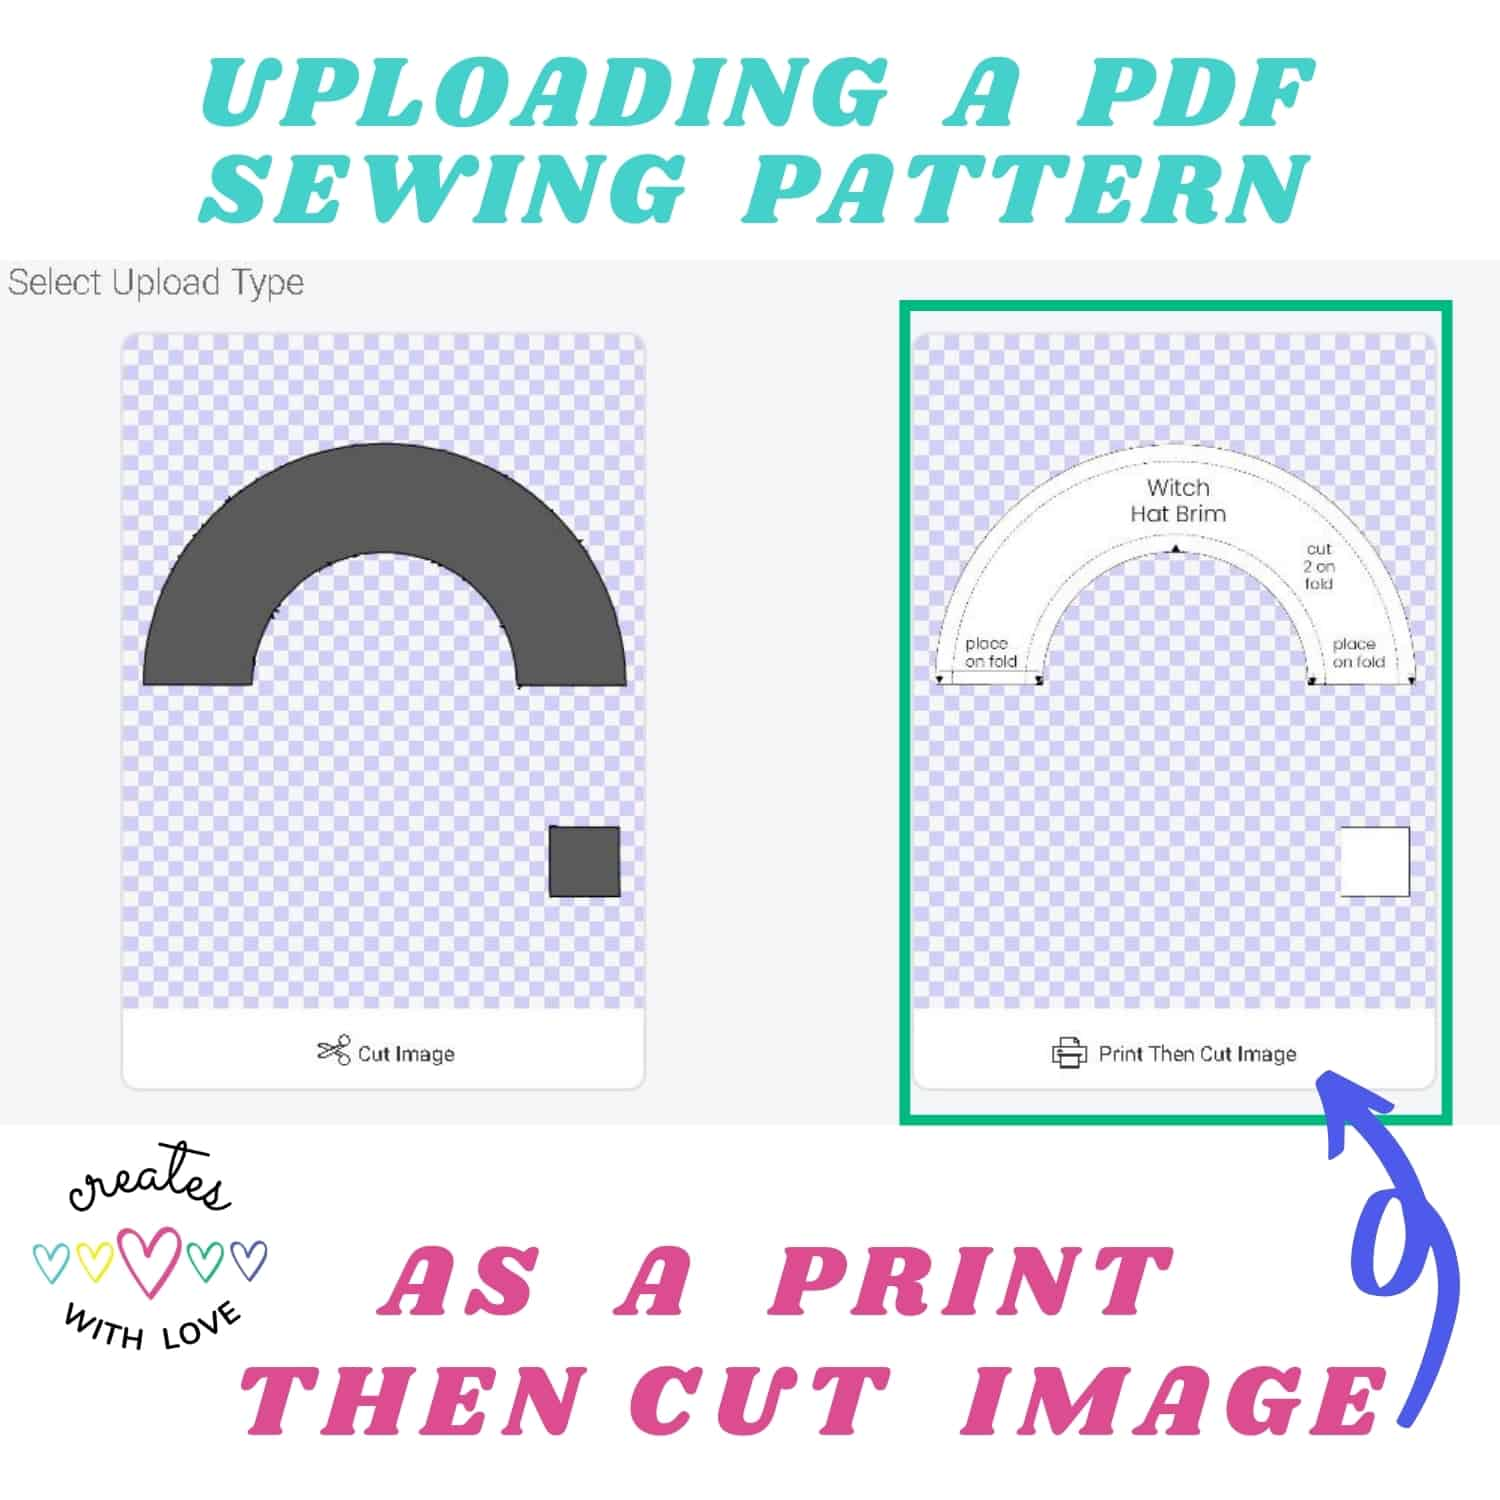 upload a print then cut image for pdf sewing patterns